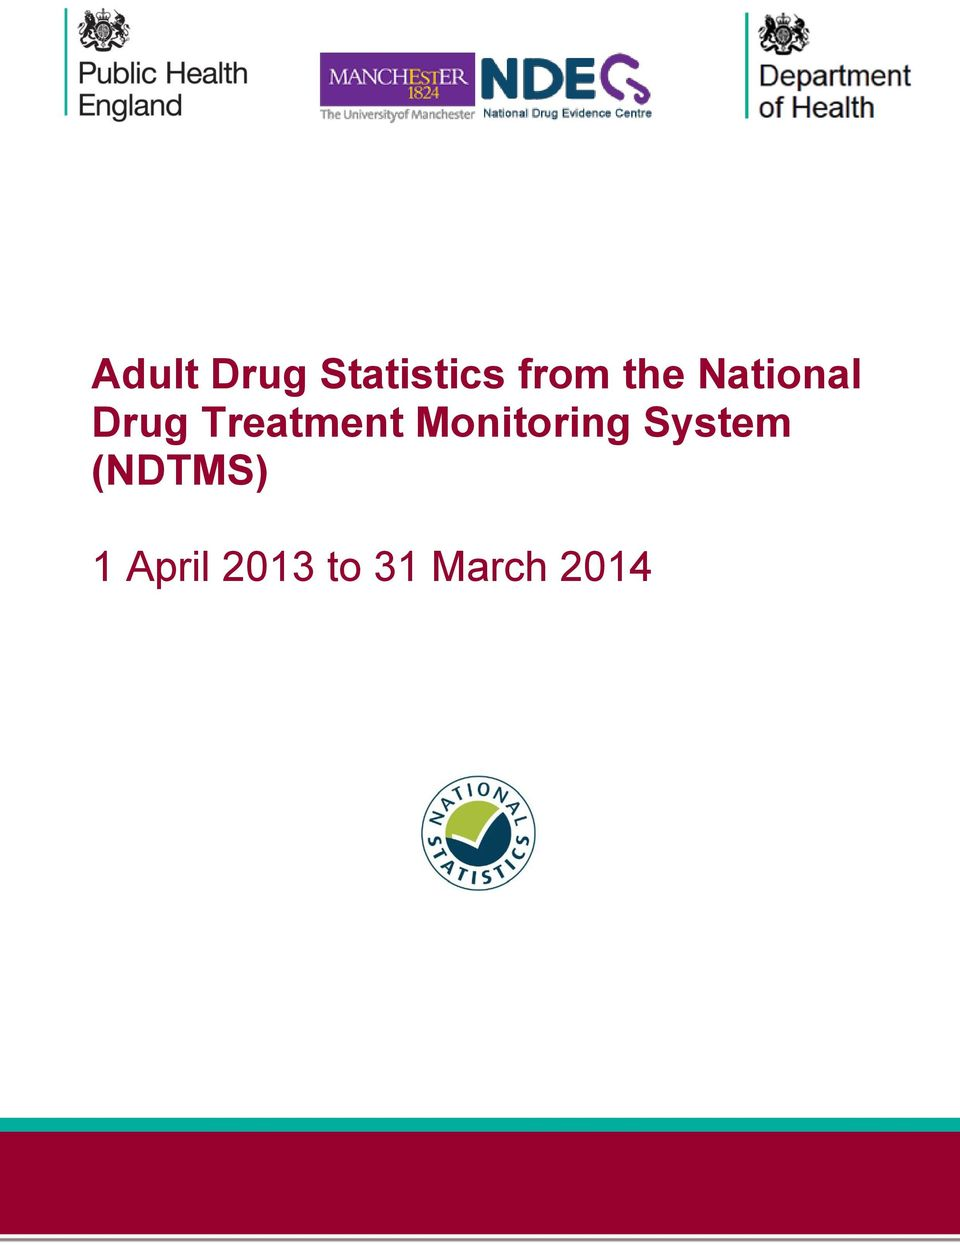 Monitoring System (NDTMS) 1